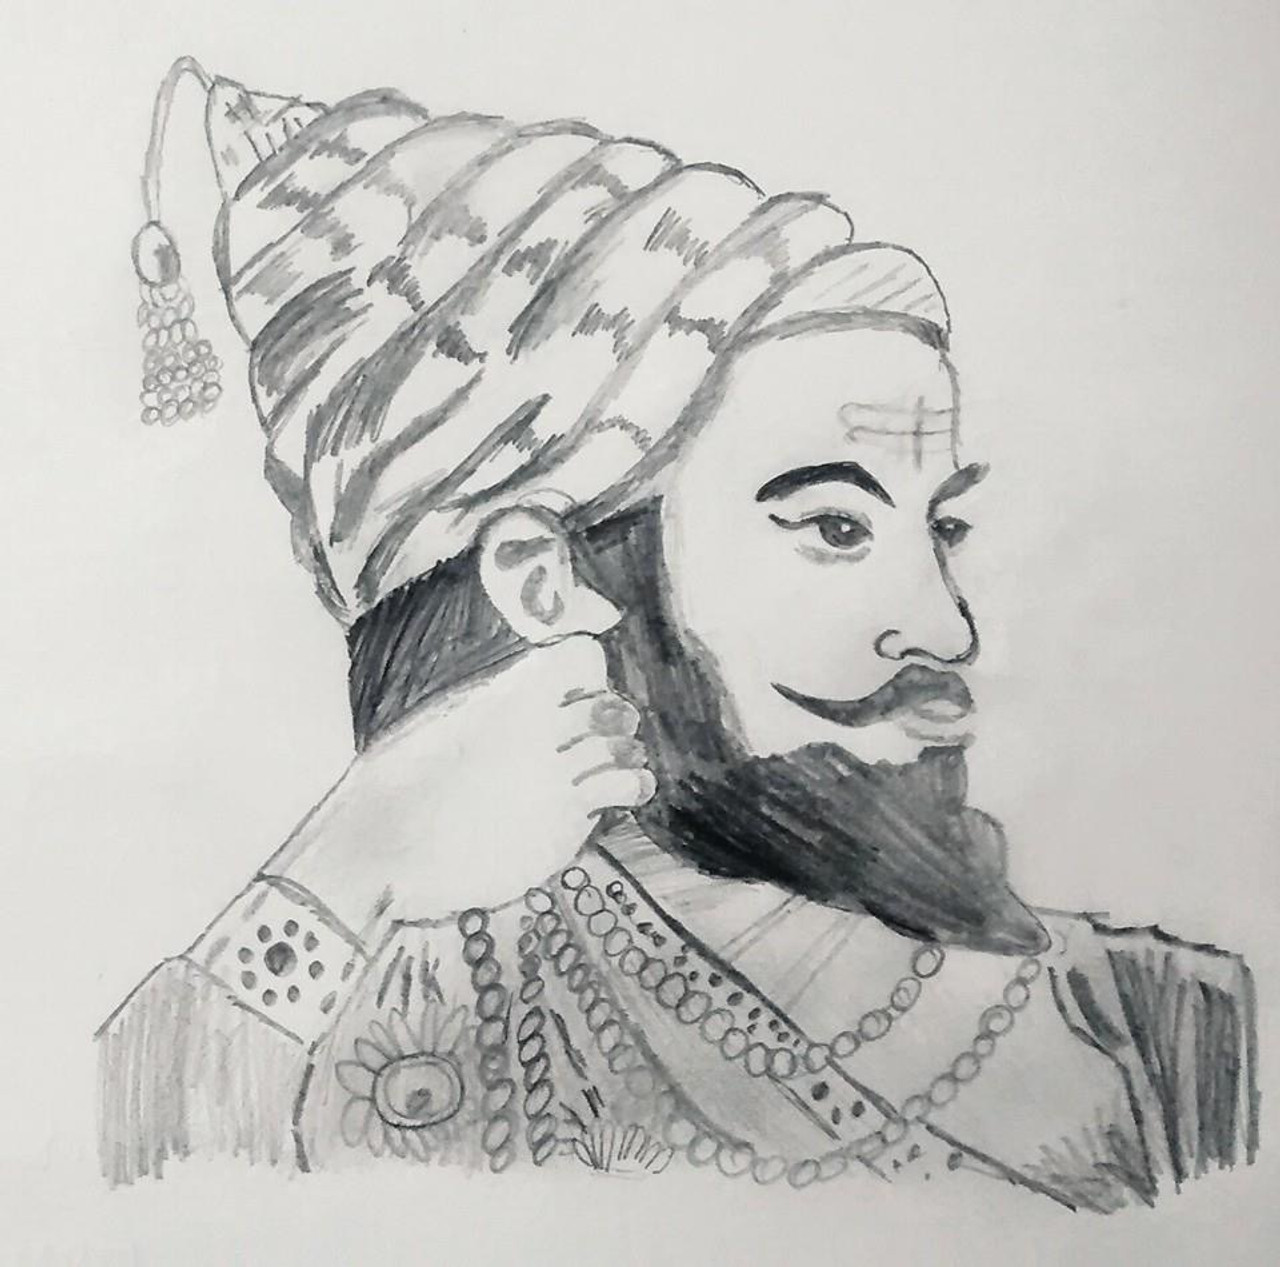 Buy chhatrapati shivaji maharaj handmade painting by aditya bafna codeart 4820 28817 paintings for sale online in india